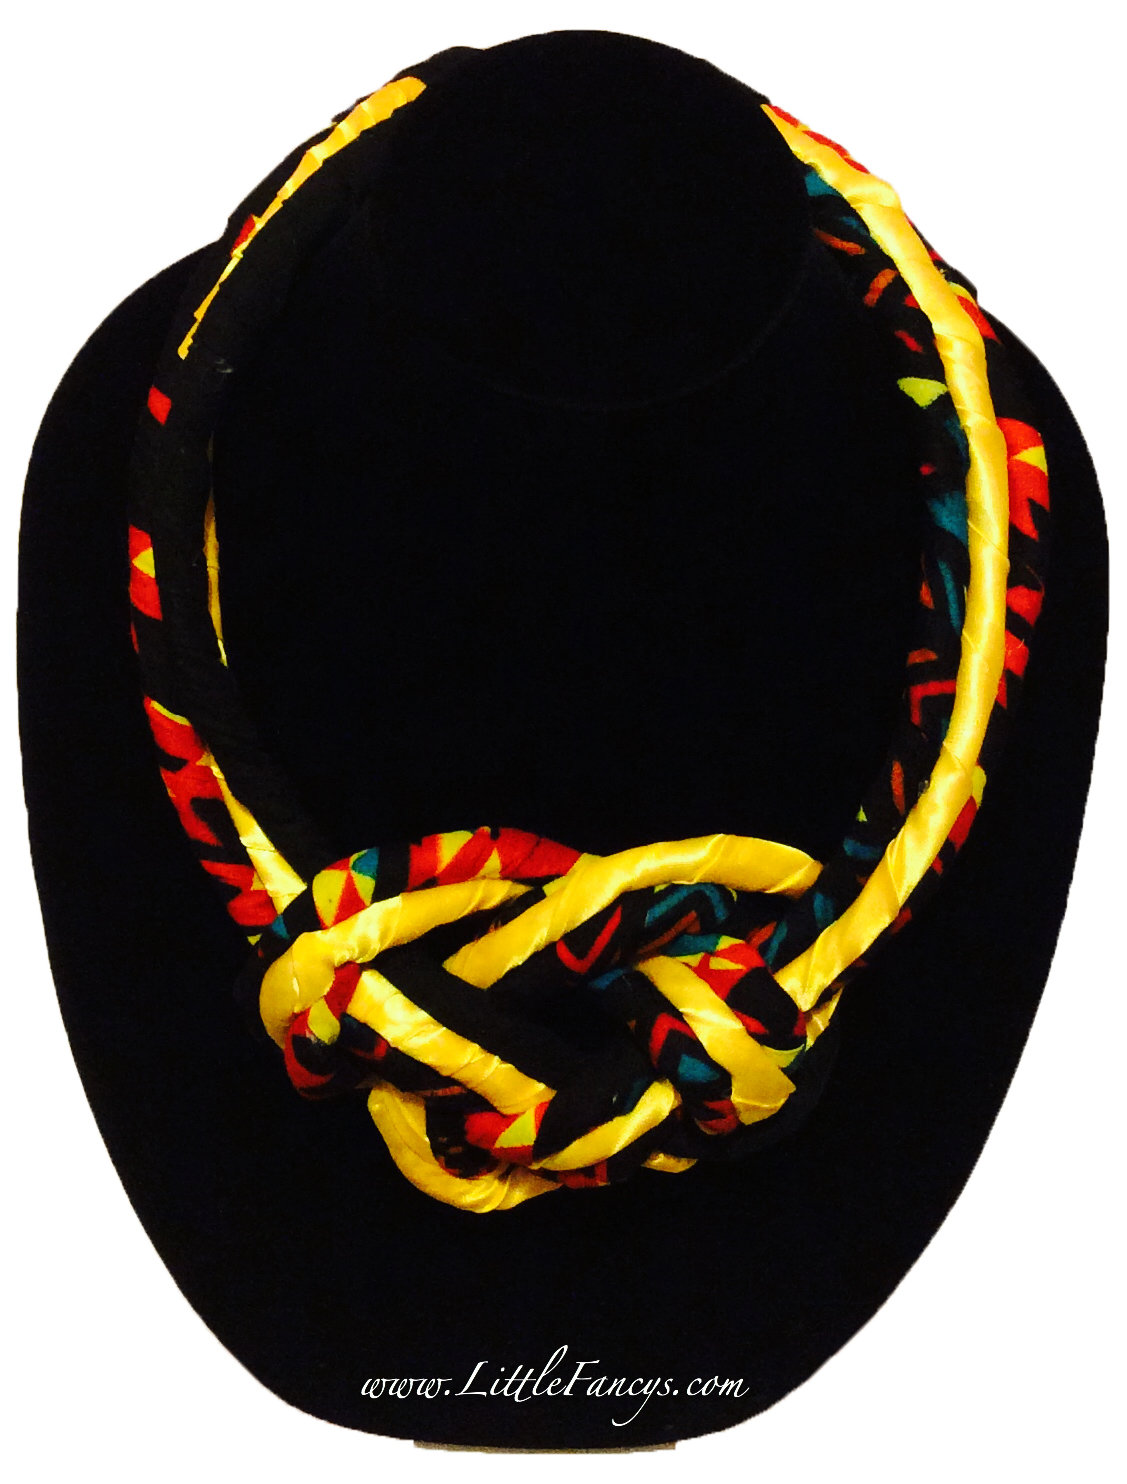 Knotted Statement Neck Piece